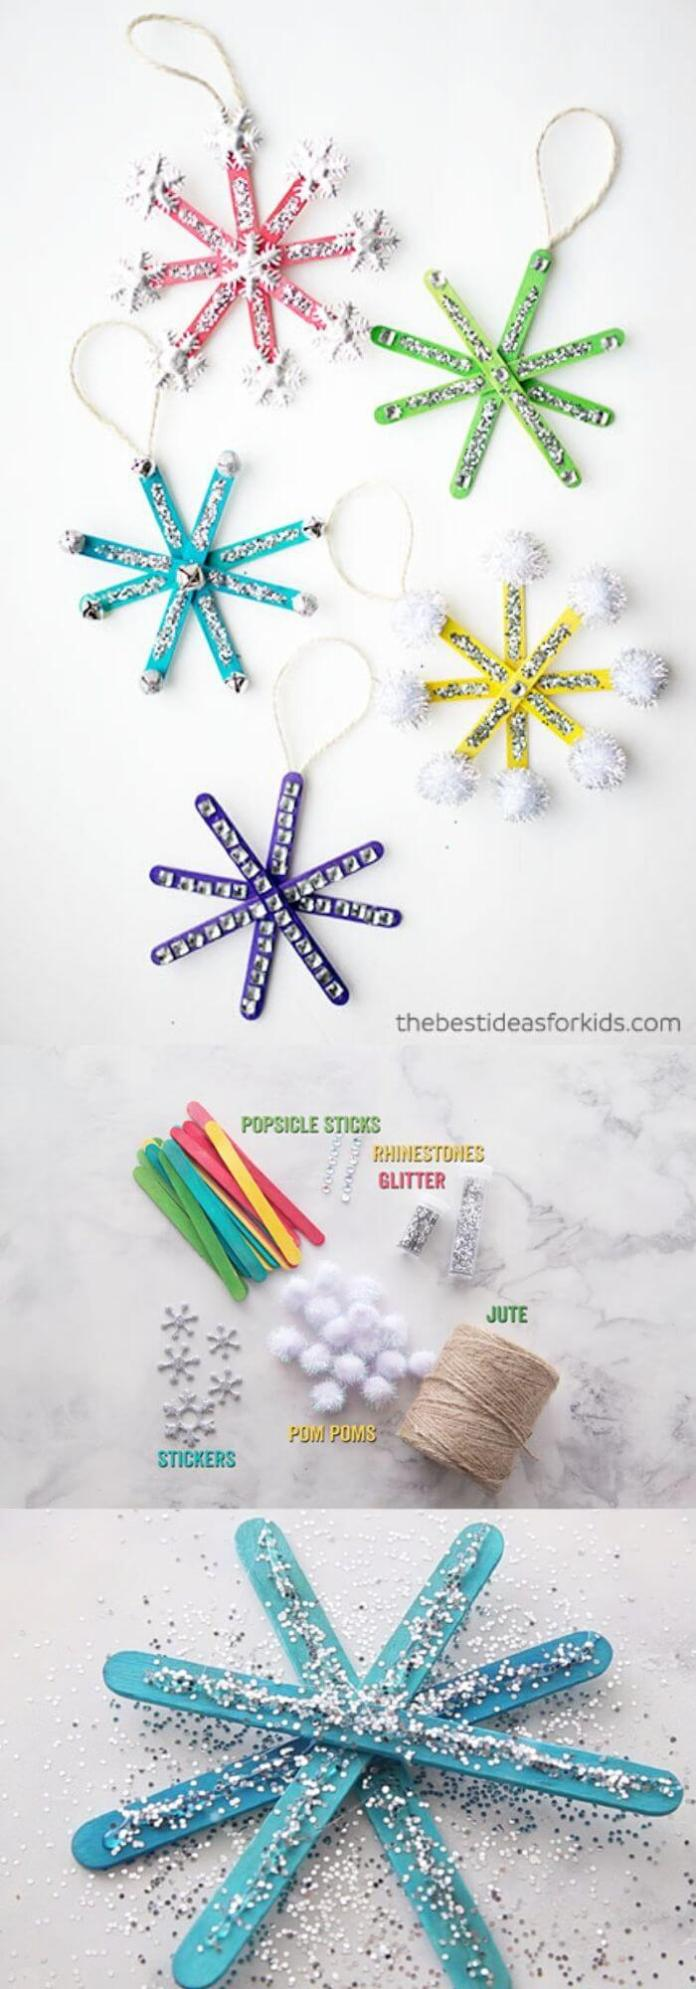 Popsicle Stick Snowflake Ornaments | Easy, Inexpensive, and Creative Christmas Crafts for Kids